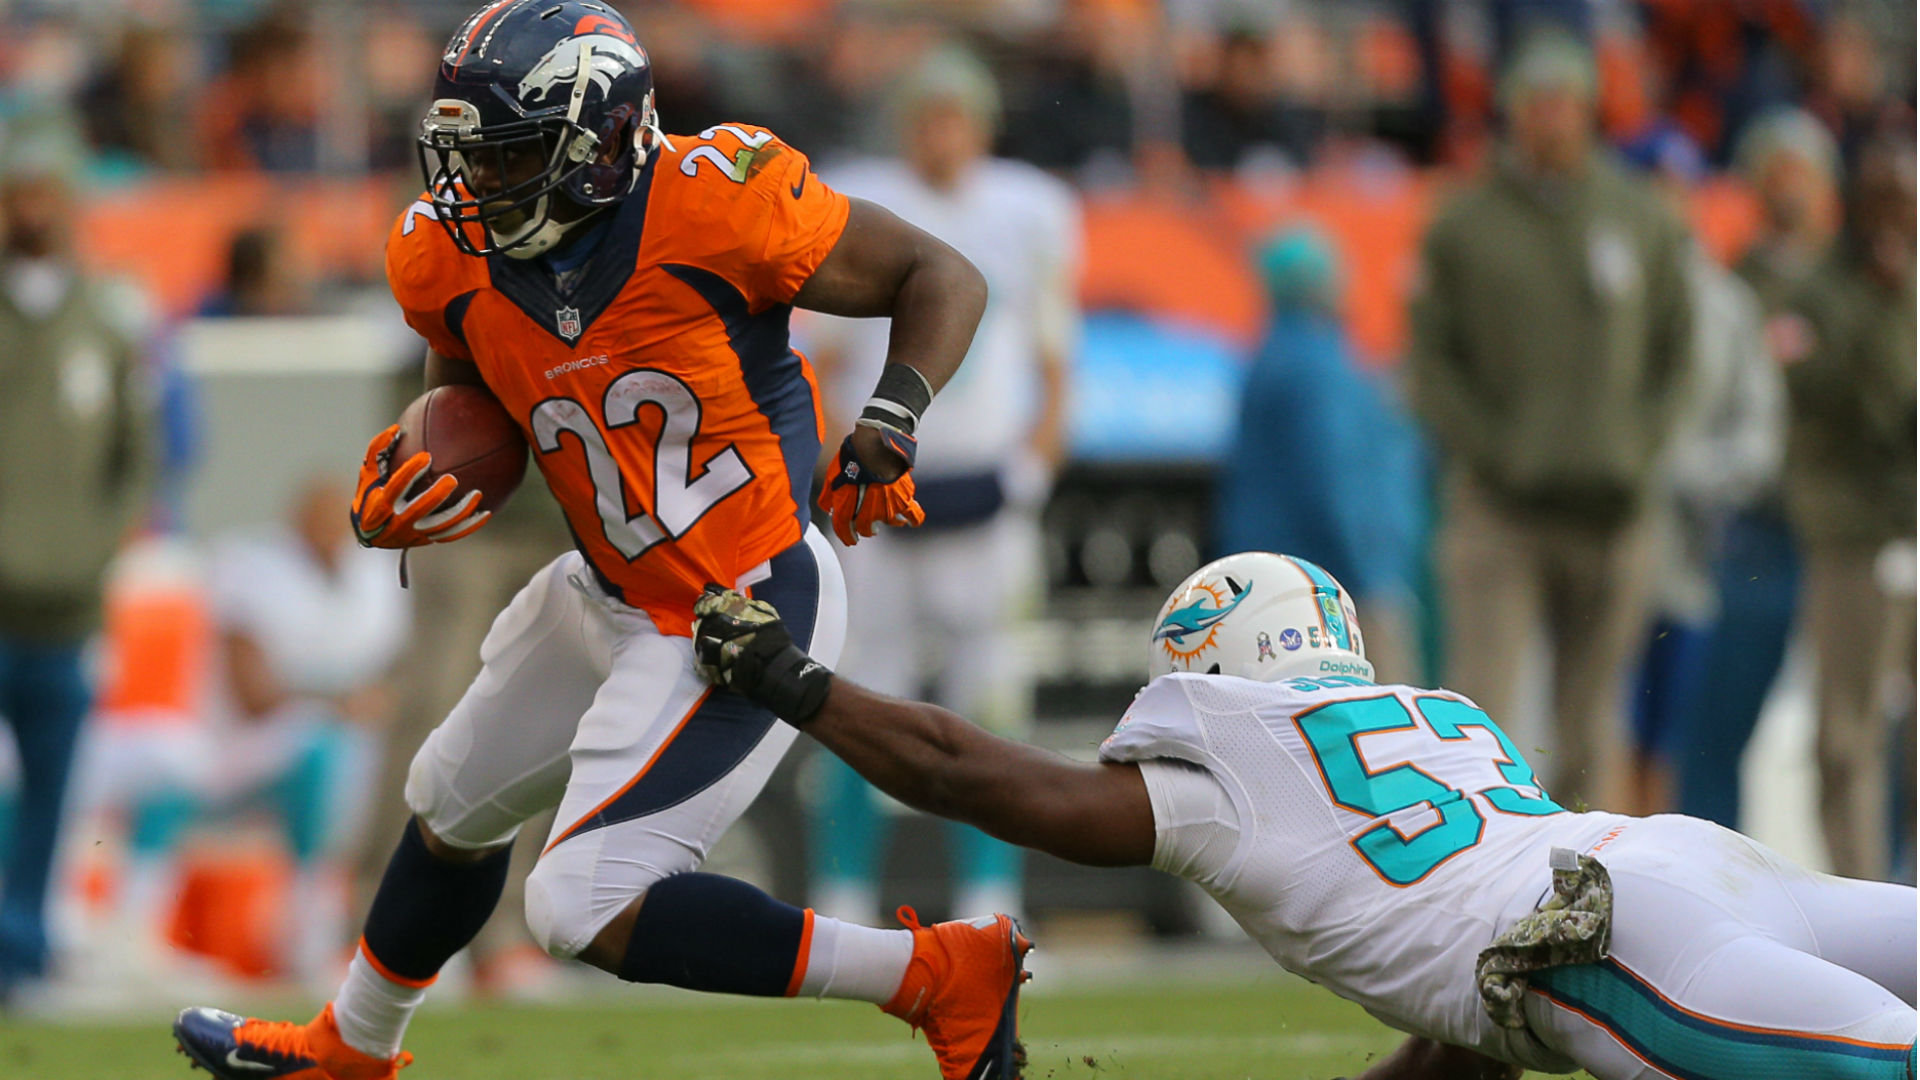 Broncos vs. Chiefs betting preview and pick – Price on Denver cheap by series' standards